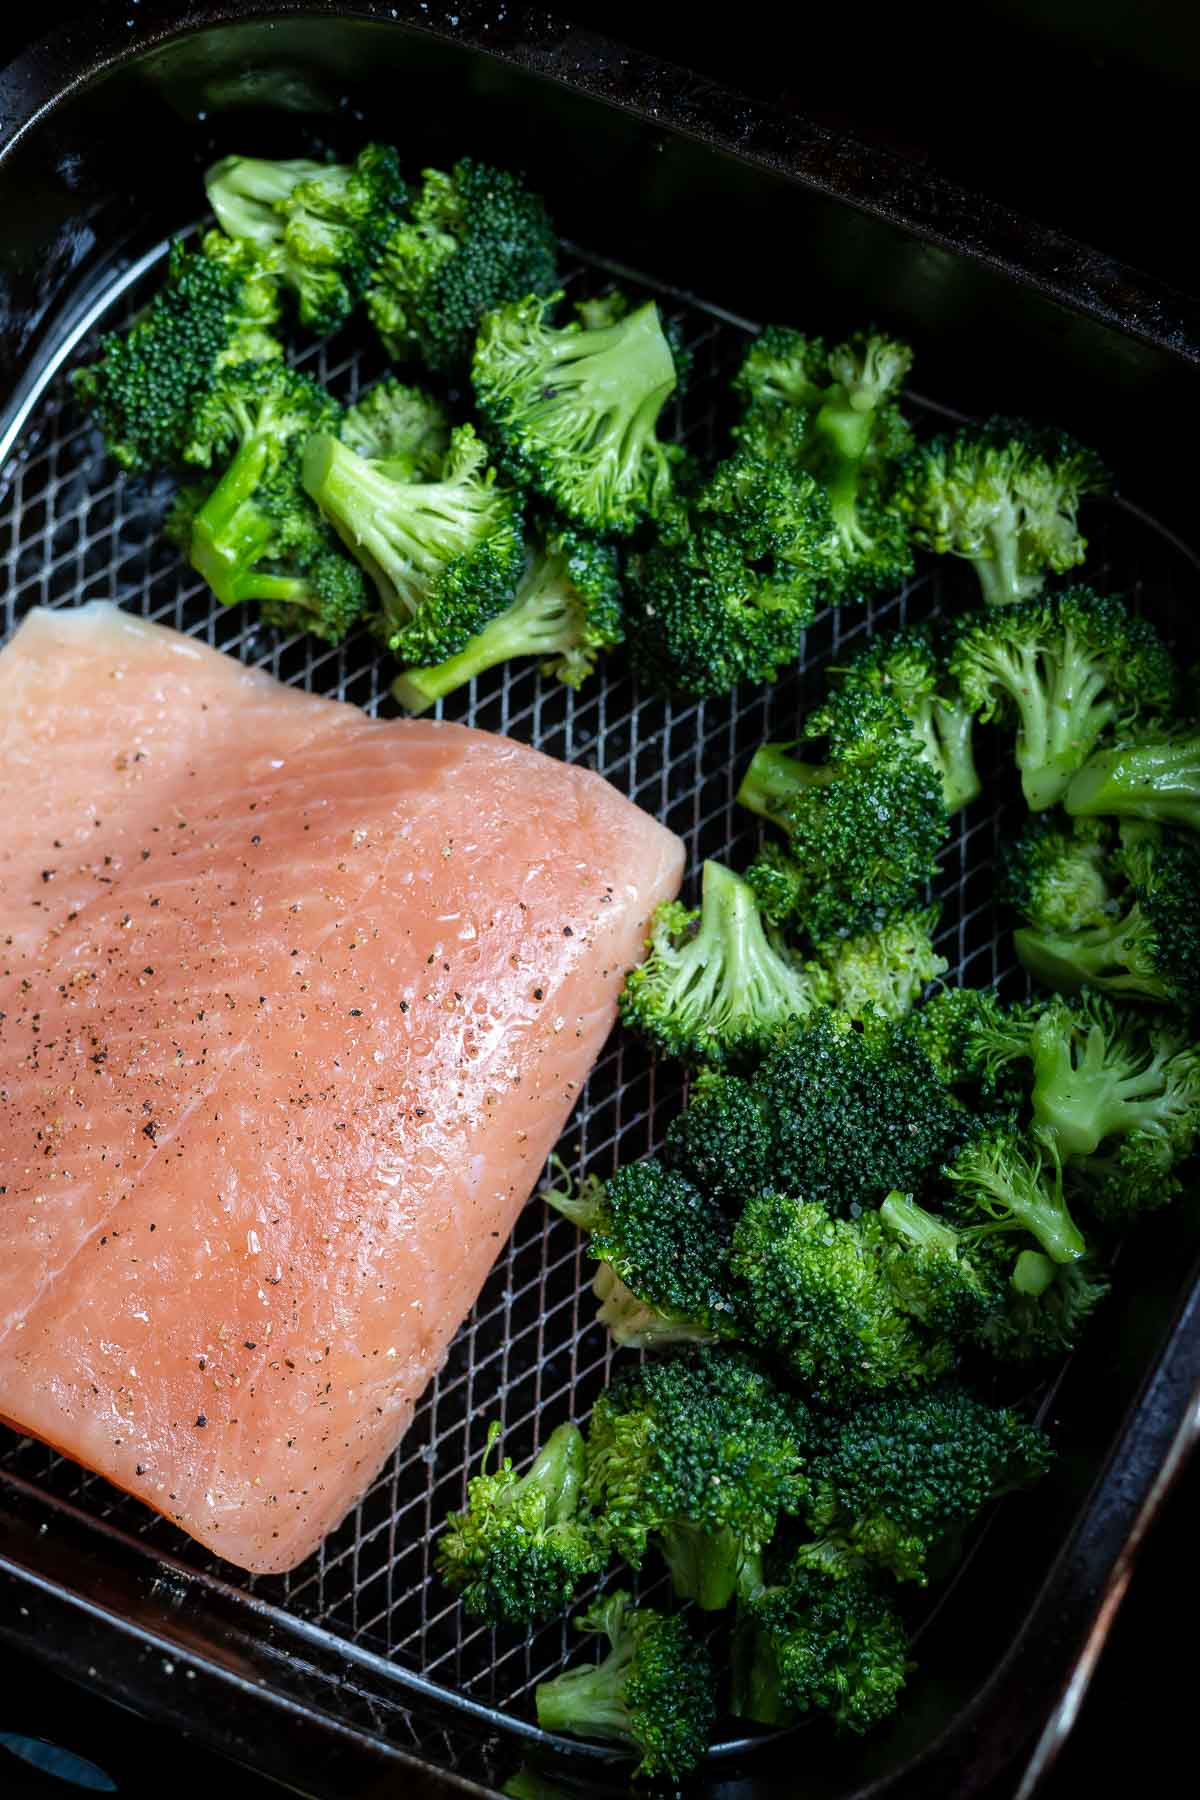 raw broccoli and salmon in air fryer basket